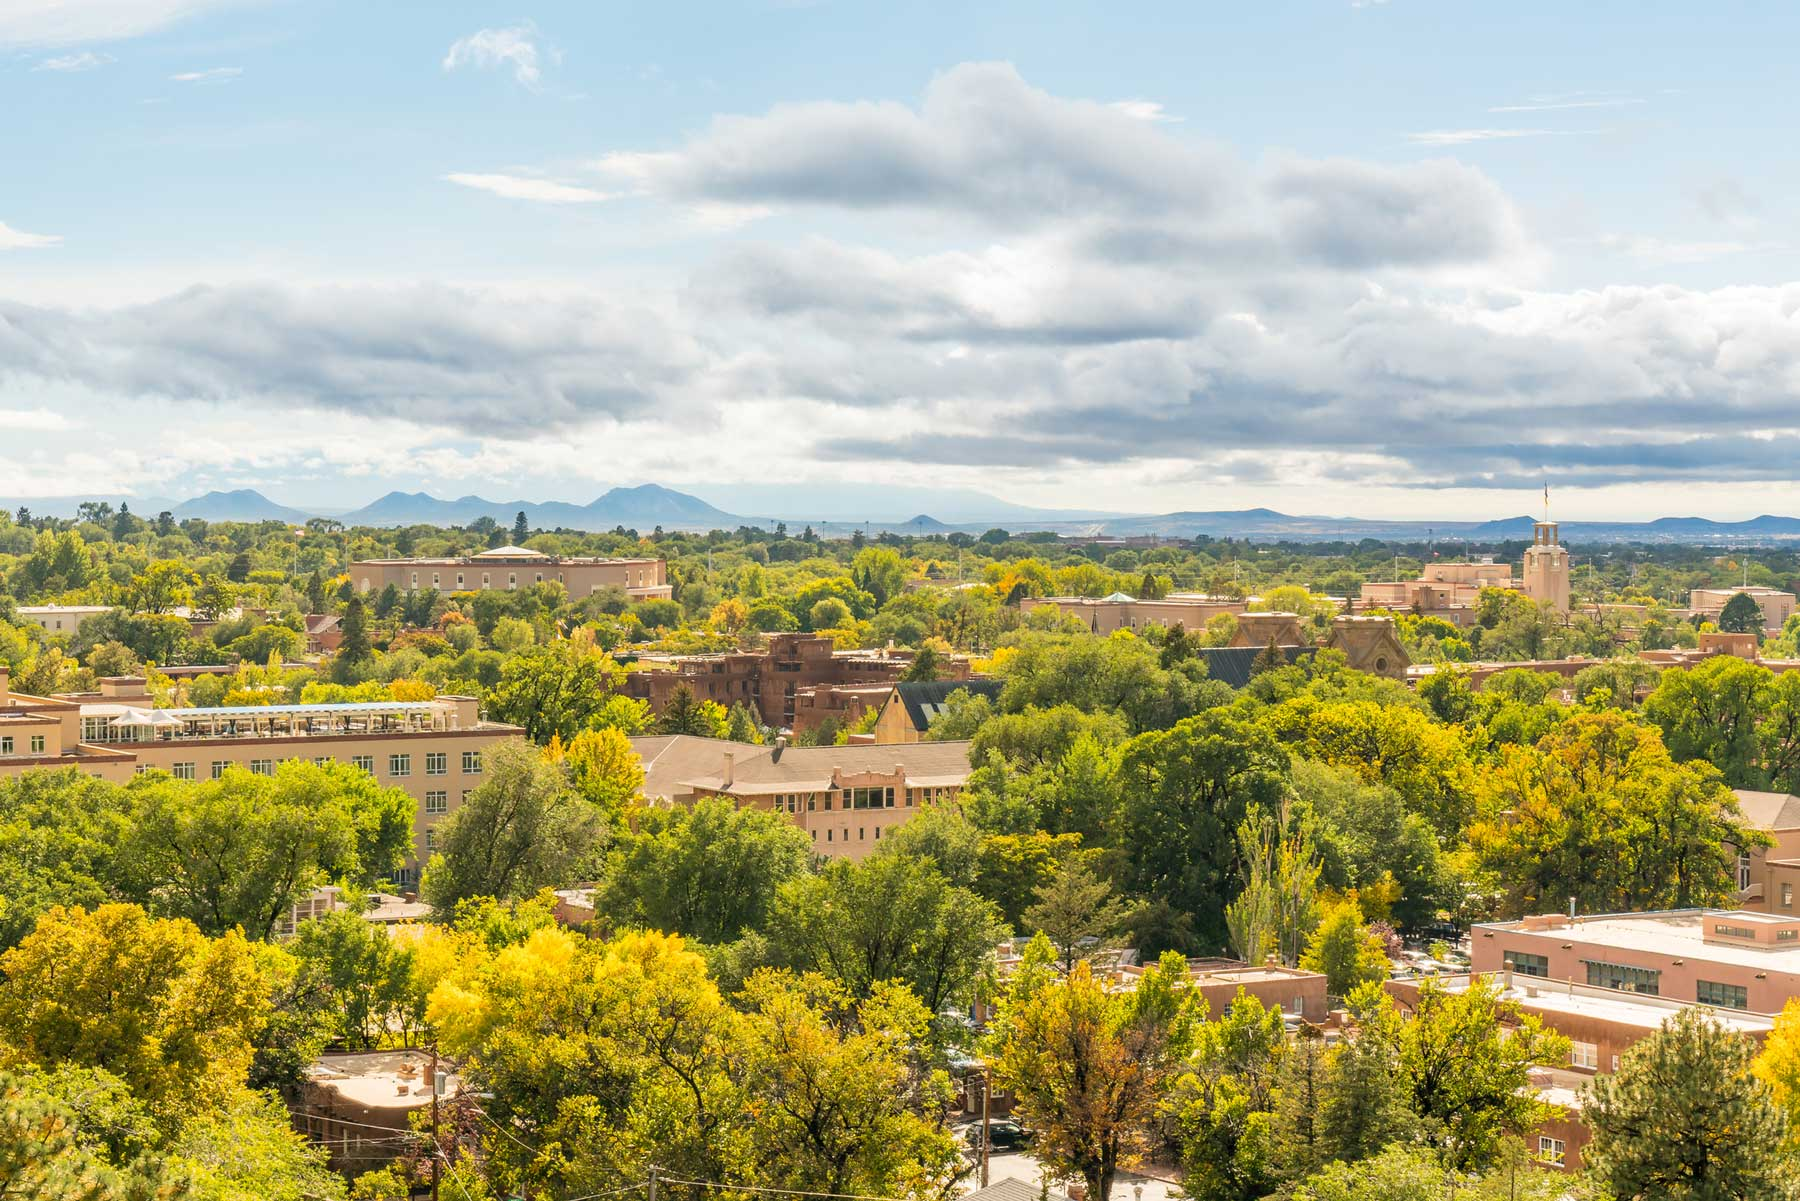 Santa Fe, New Mexico Skyline